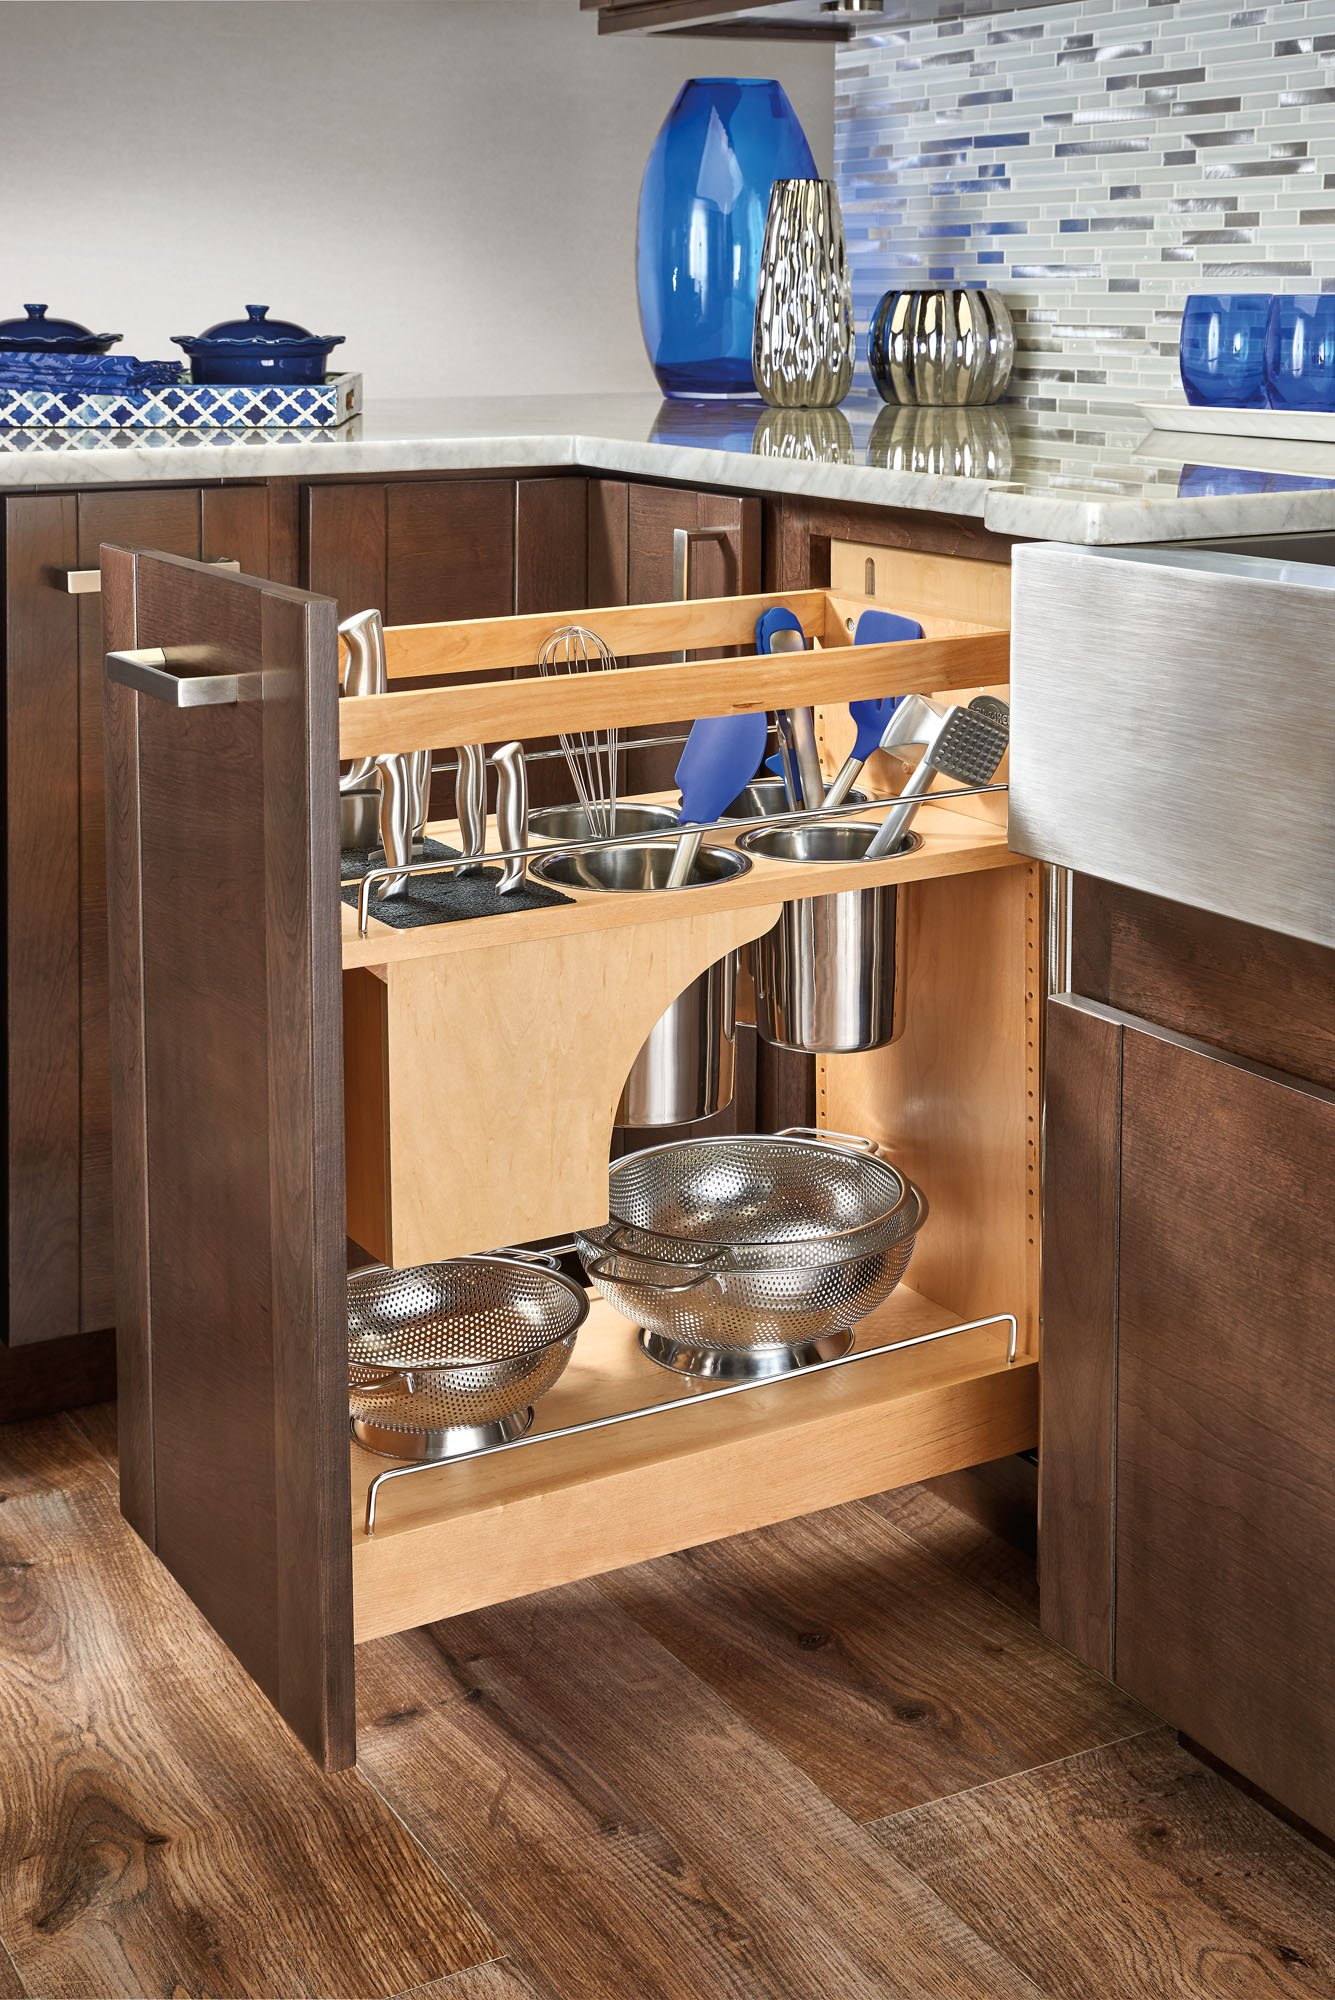 Rev-A-Shelf - 448KB-BCSC-11C - 11 in. Pull-Out Wood Base Cabinet Organizer with Knife Block and Soft-Close Slides by Rev-A-Shelf